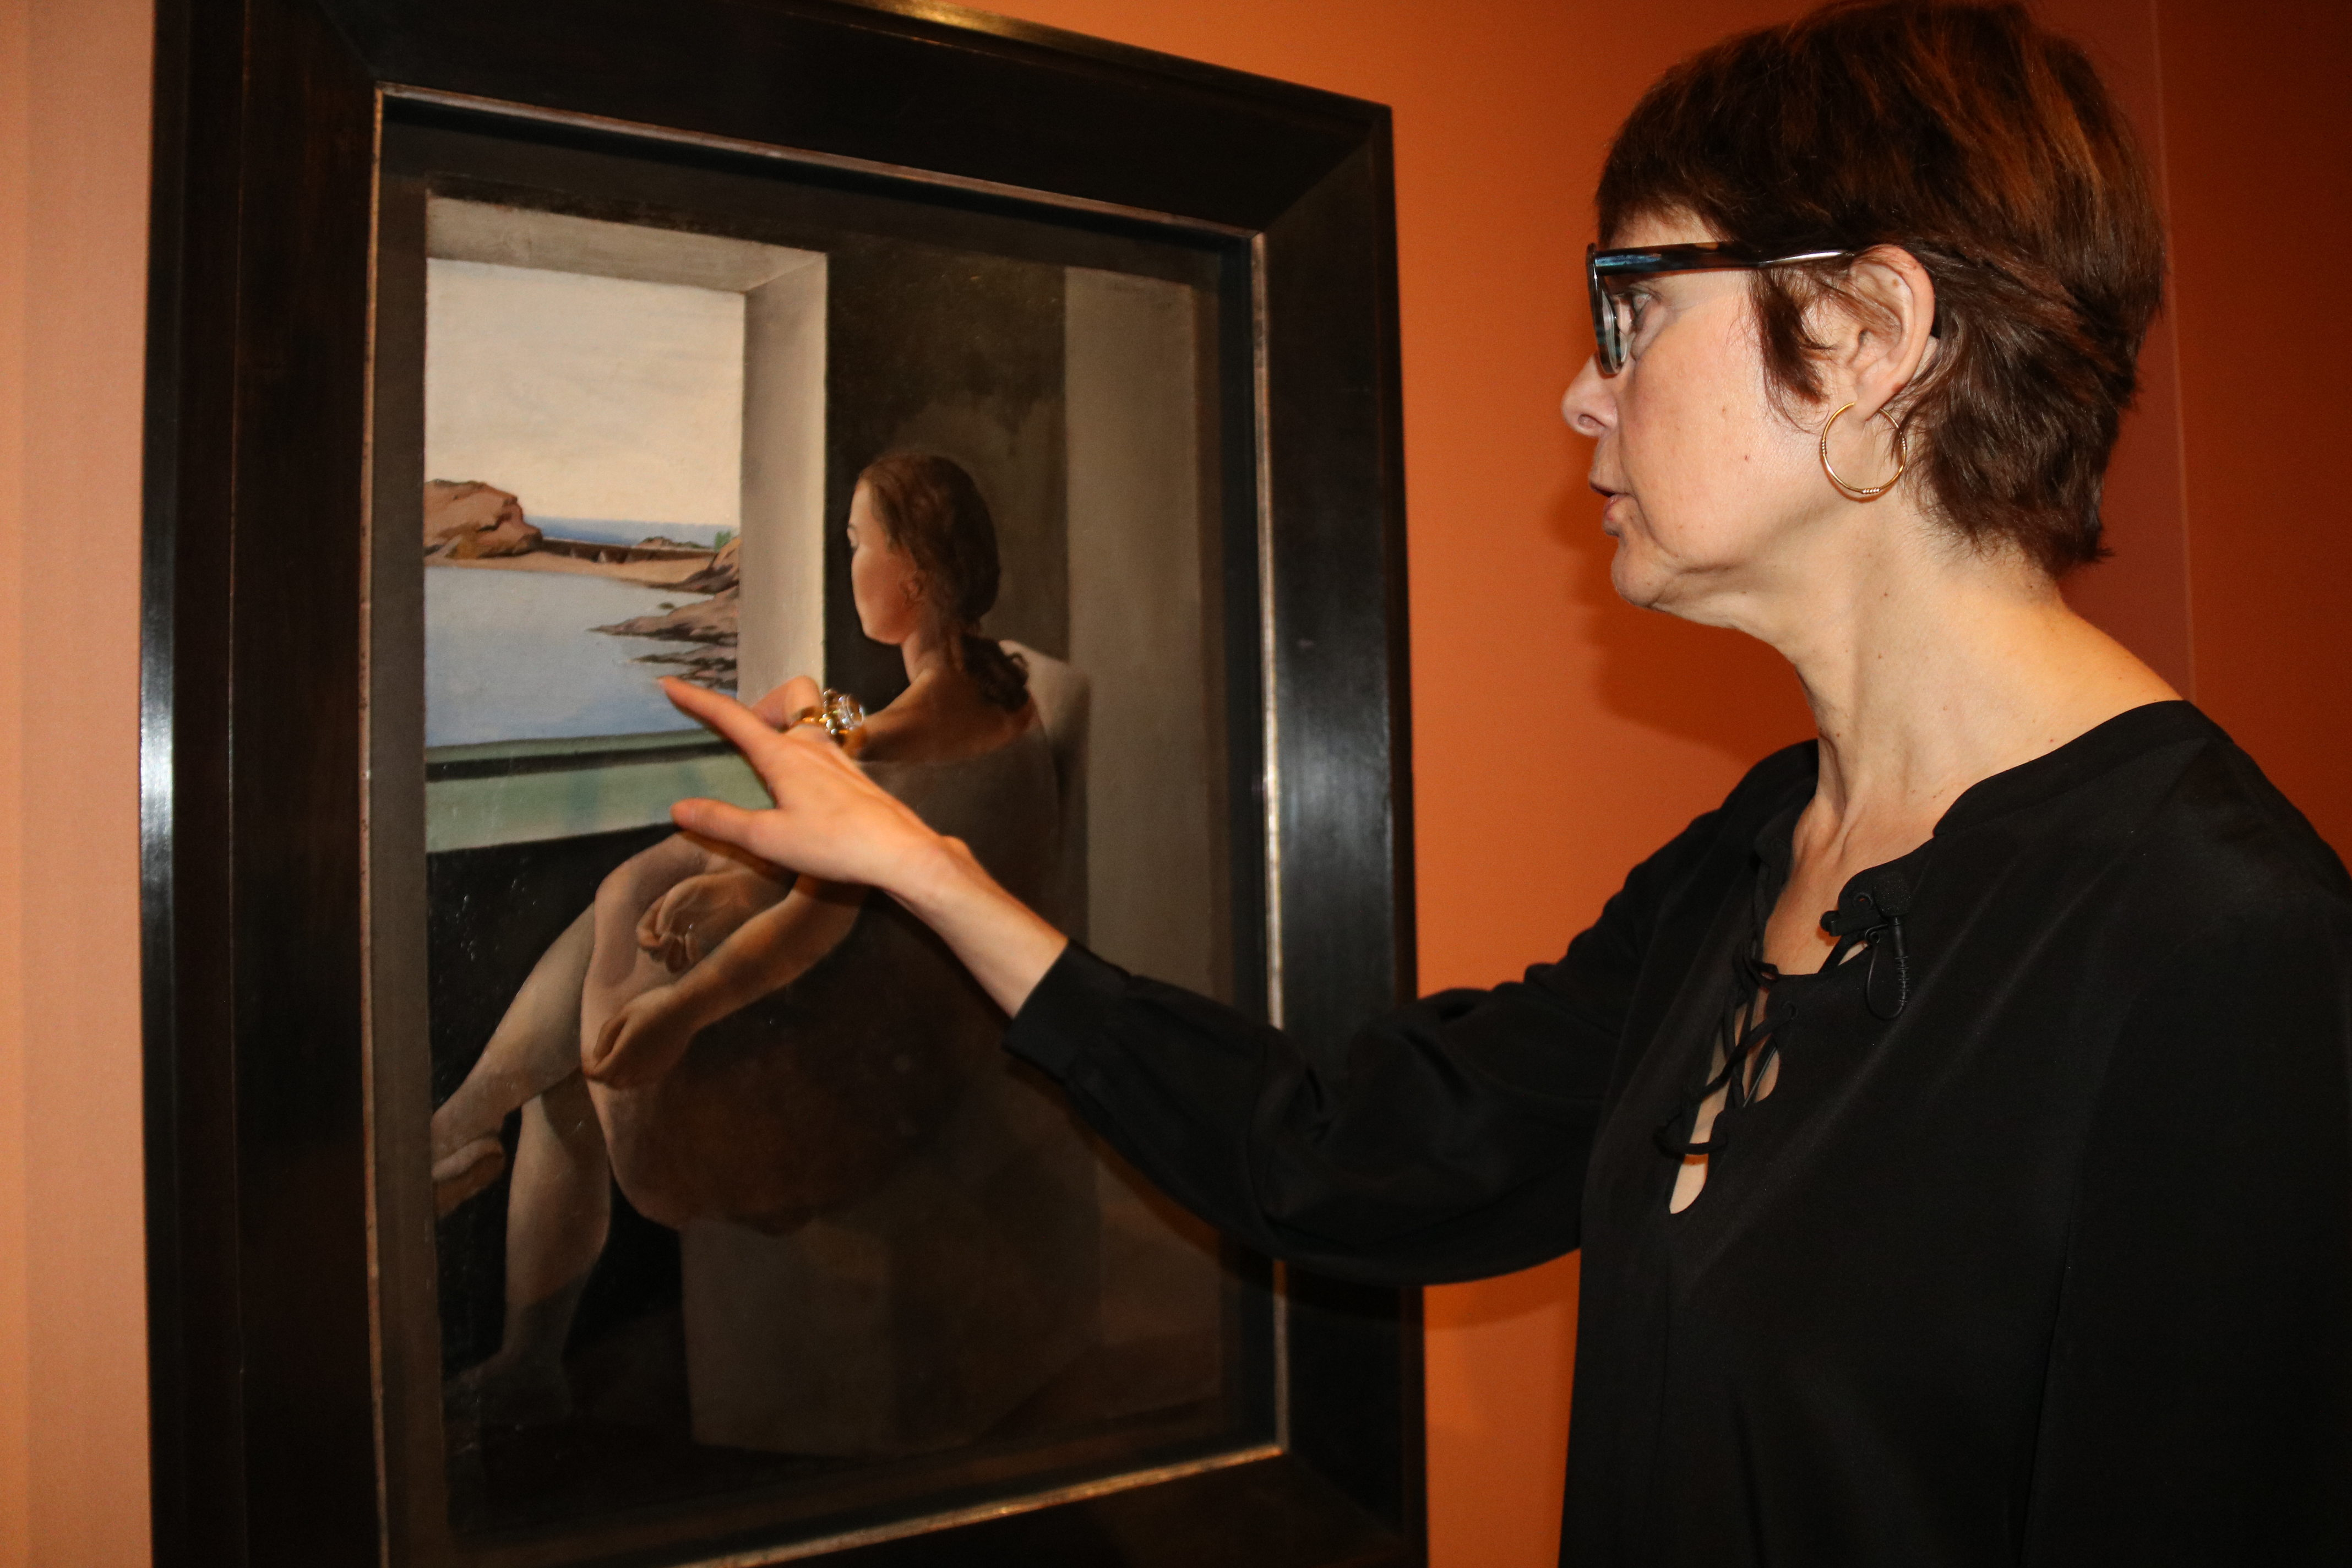 The director of Dalí Museums, Montse Aguer before the portrait 'Figure in profile' (by ACN)